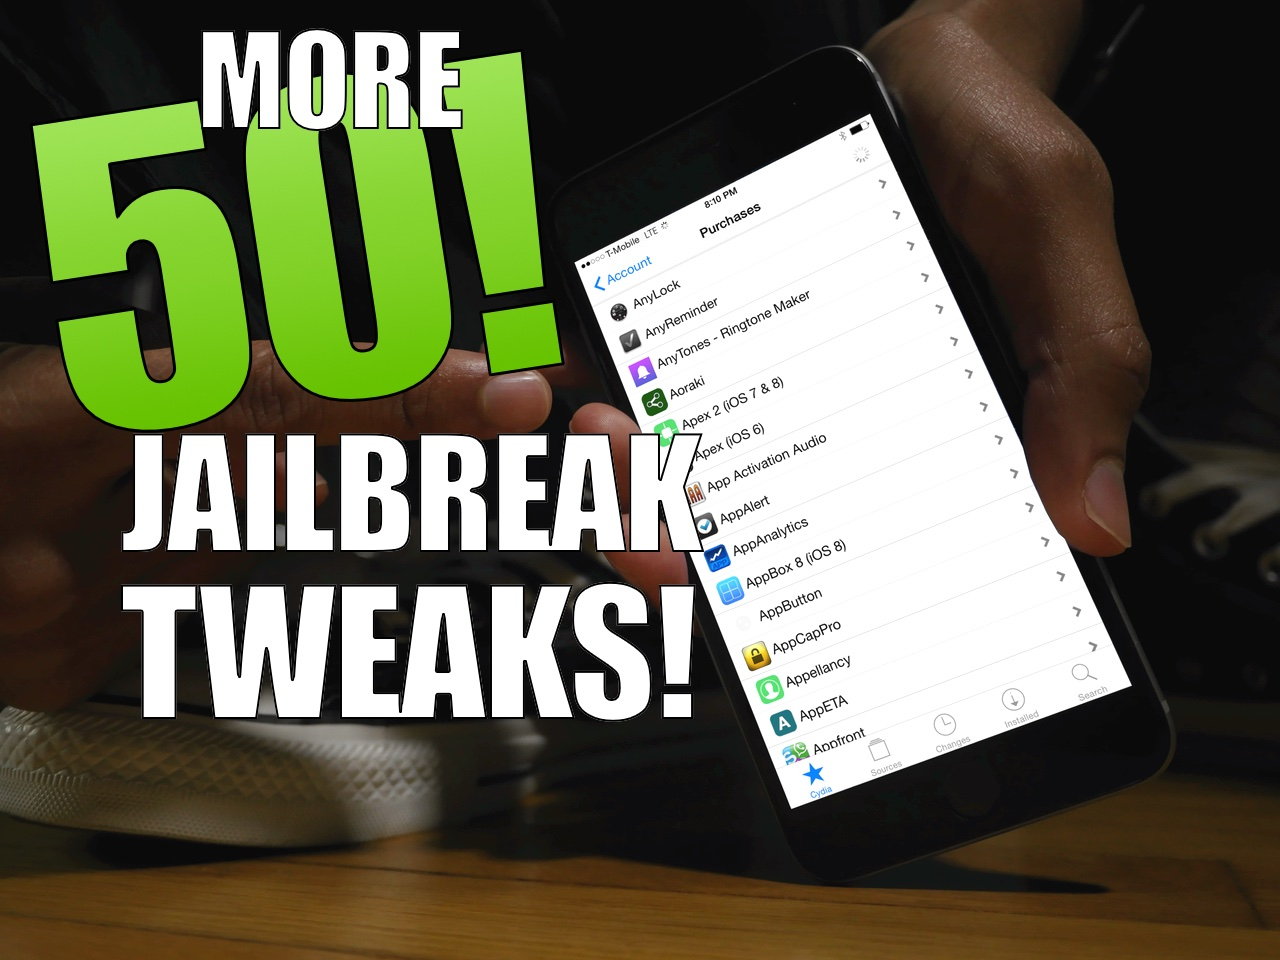 50 More Jailbreak tweaks TaiG iOS 8.3